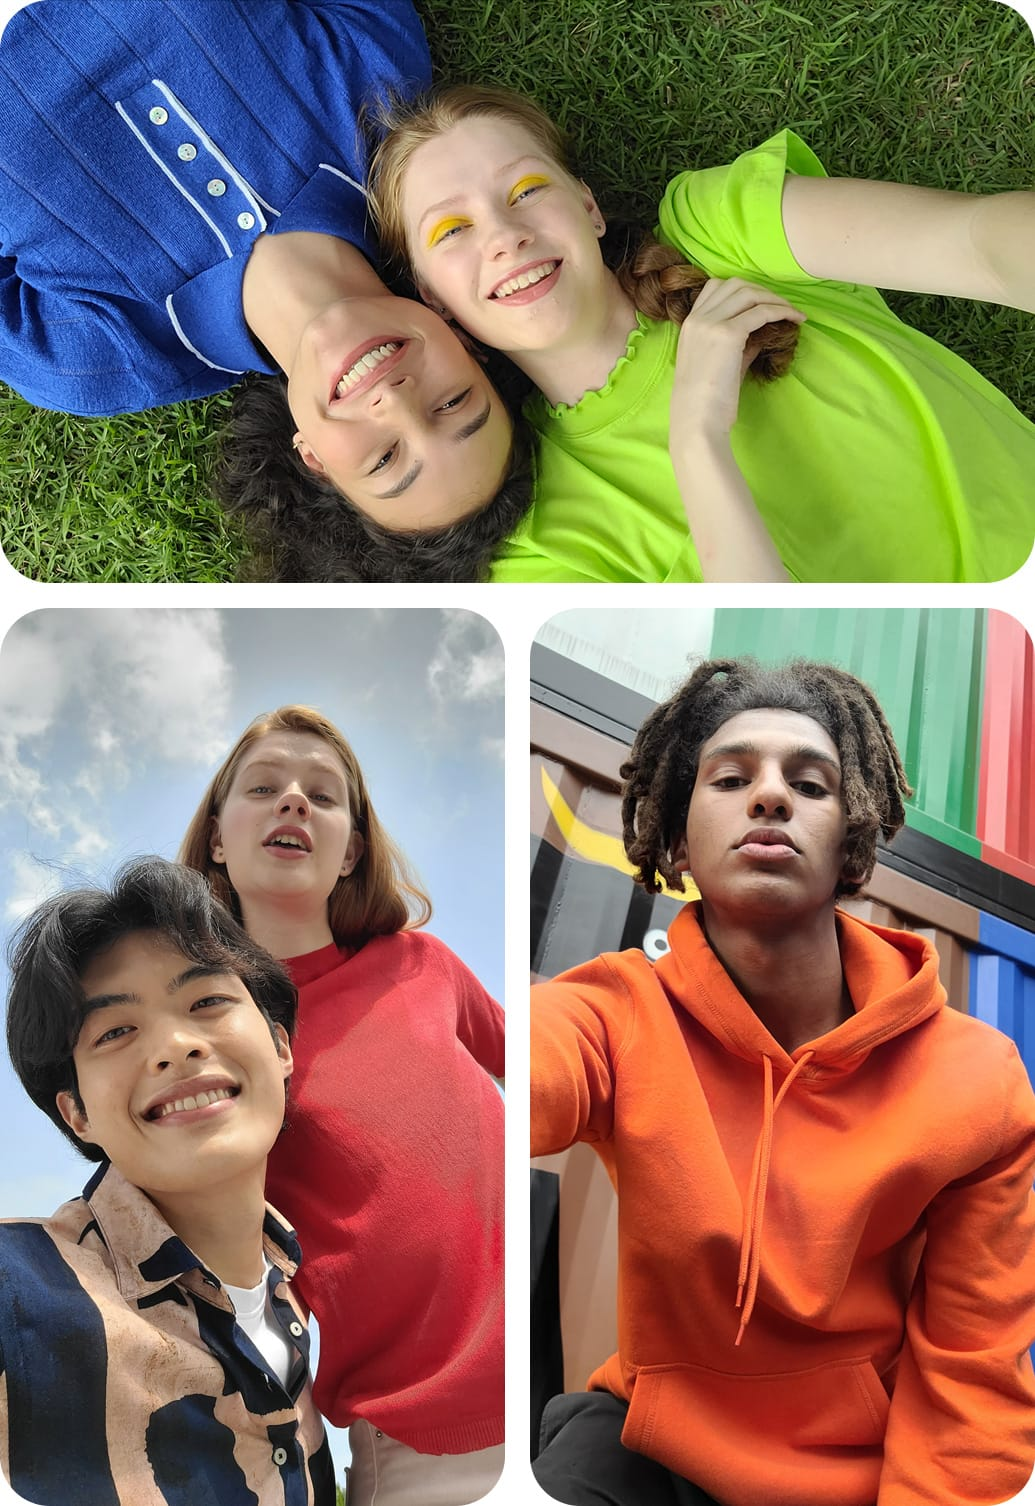 Three kinds of selfies, taken with the 32MP Front Camera for high quality, detailed shots. Two women are laying in a field with their heads touching. A low-angle selfie of a woman. A low-angle selfie of a man and a woman looking down at the phone.